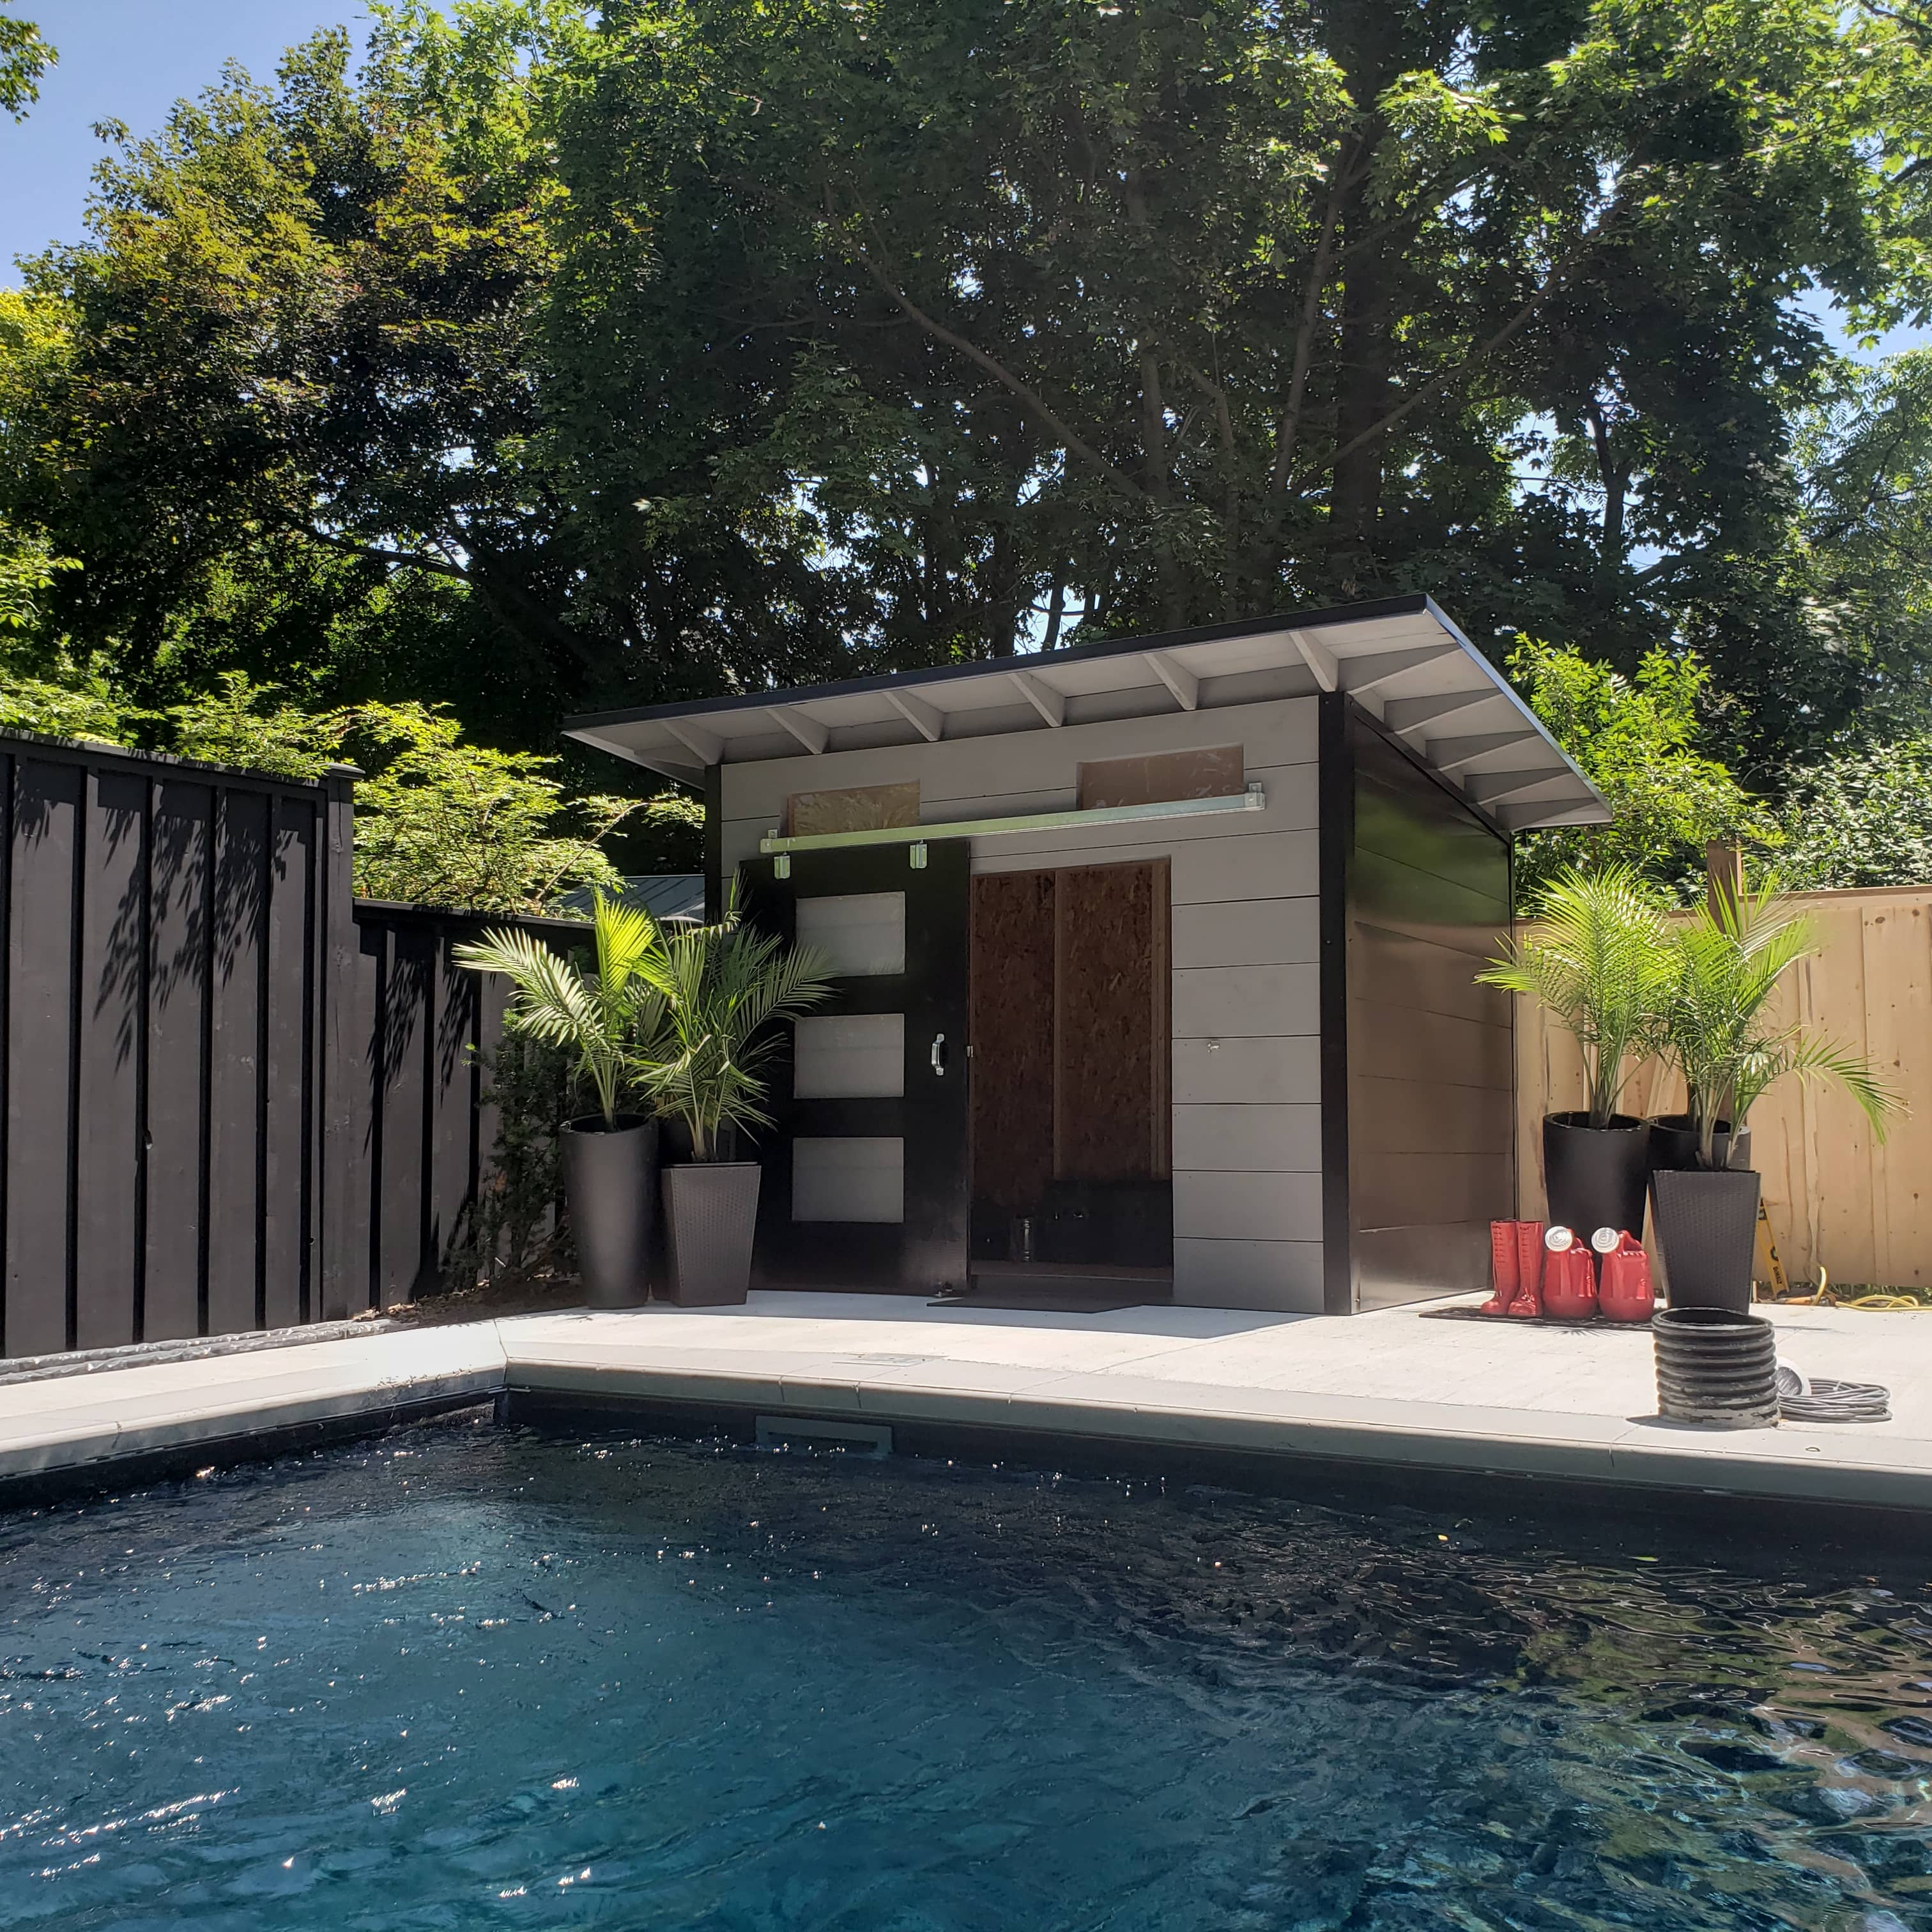 10' x 8' Advanced Pool Shed with Kendall Charcoal Shiplap Siding and Black Flatstock Steel